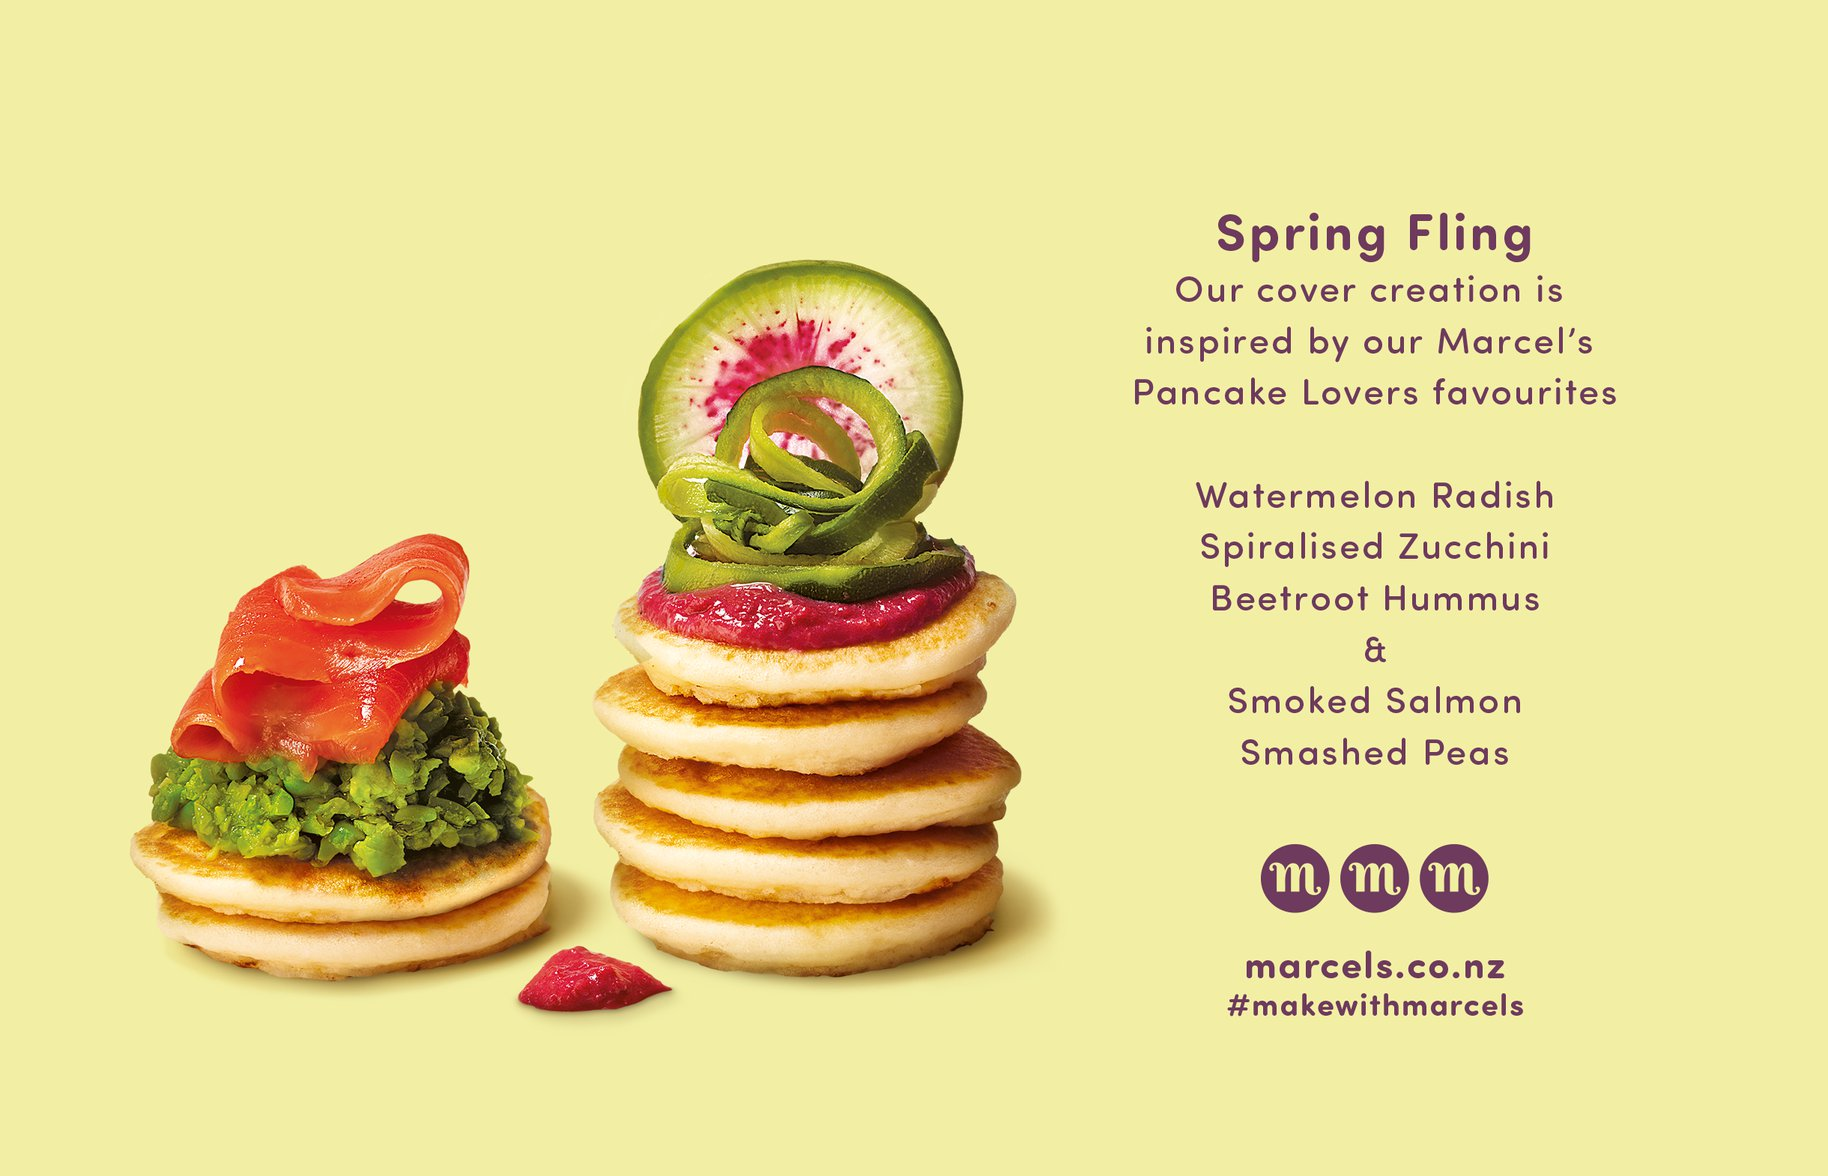 Marcel's Spring Fling Blini Photography